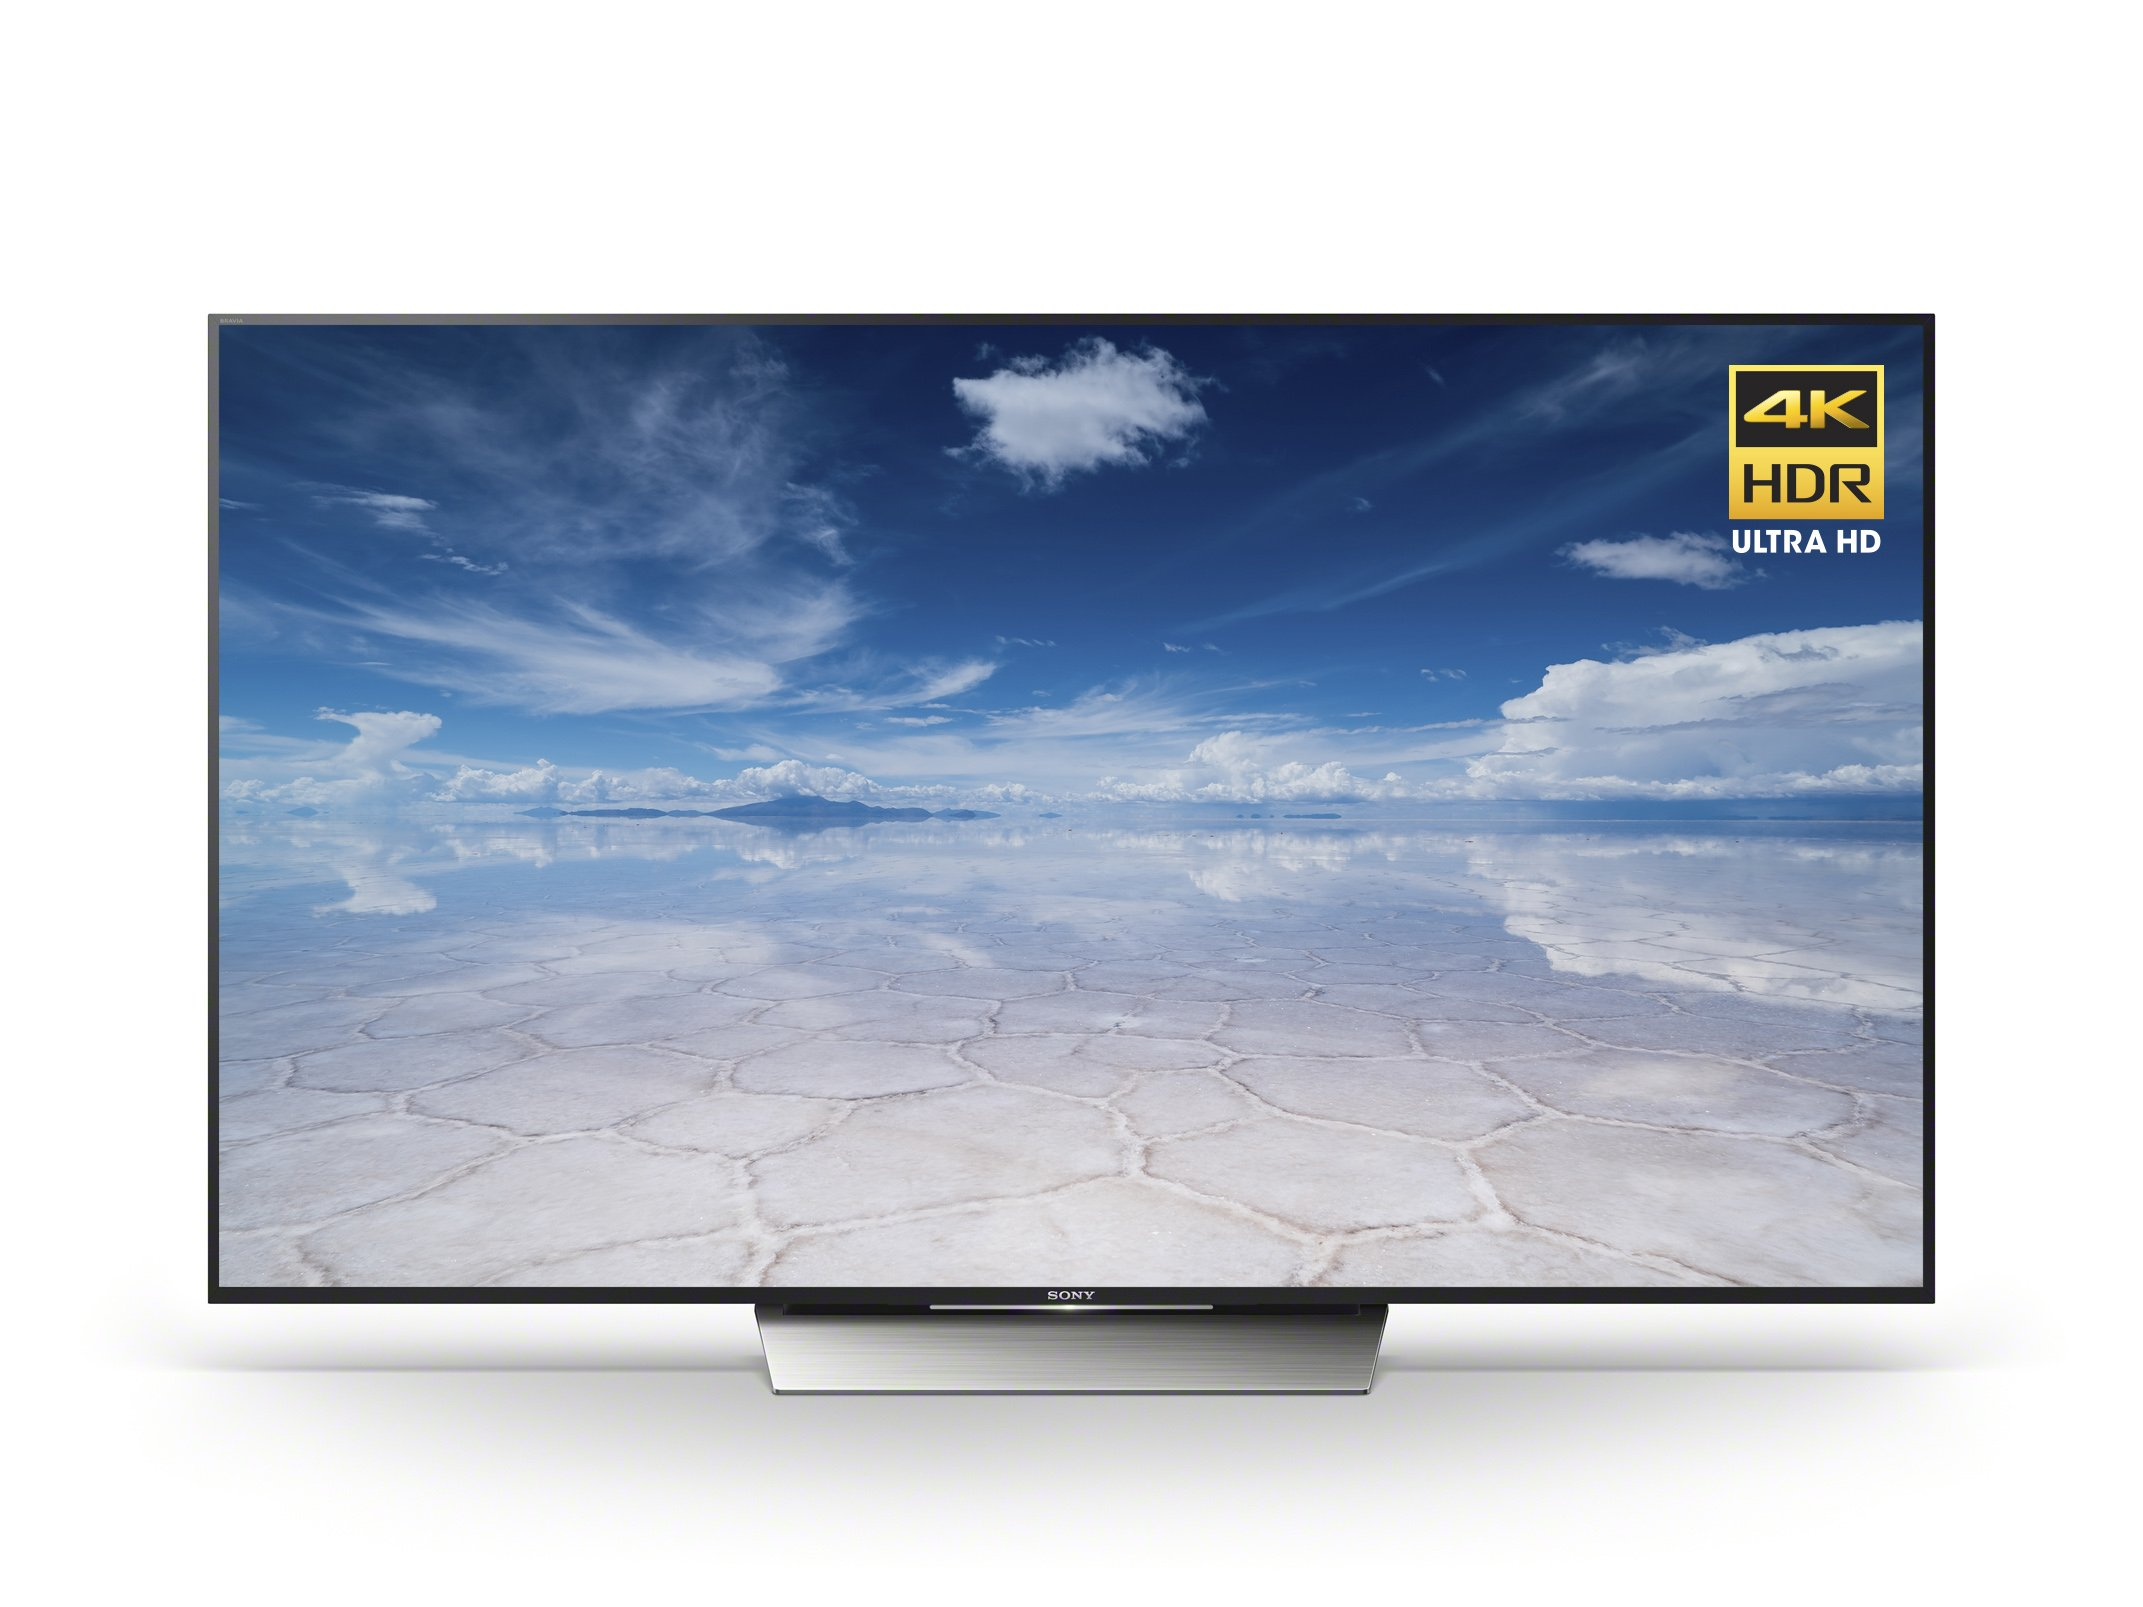 Sony XBR55X850D 55-Inch 4K Ultra HD Smart LED TV Review